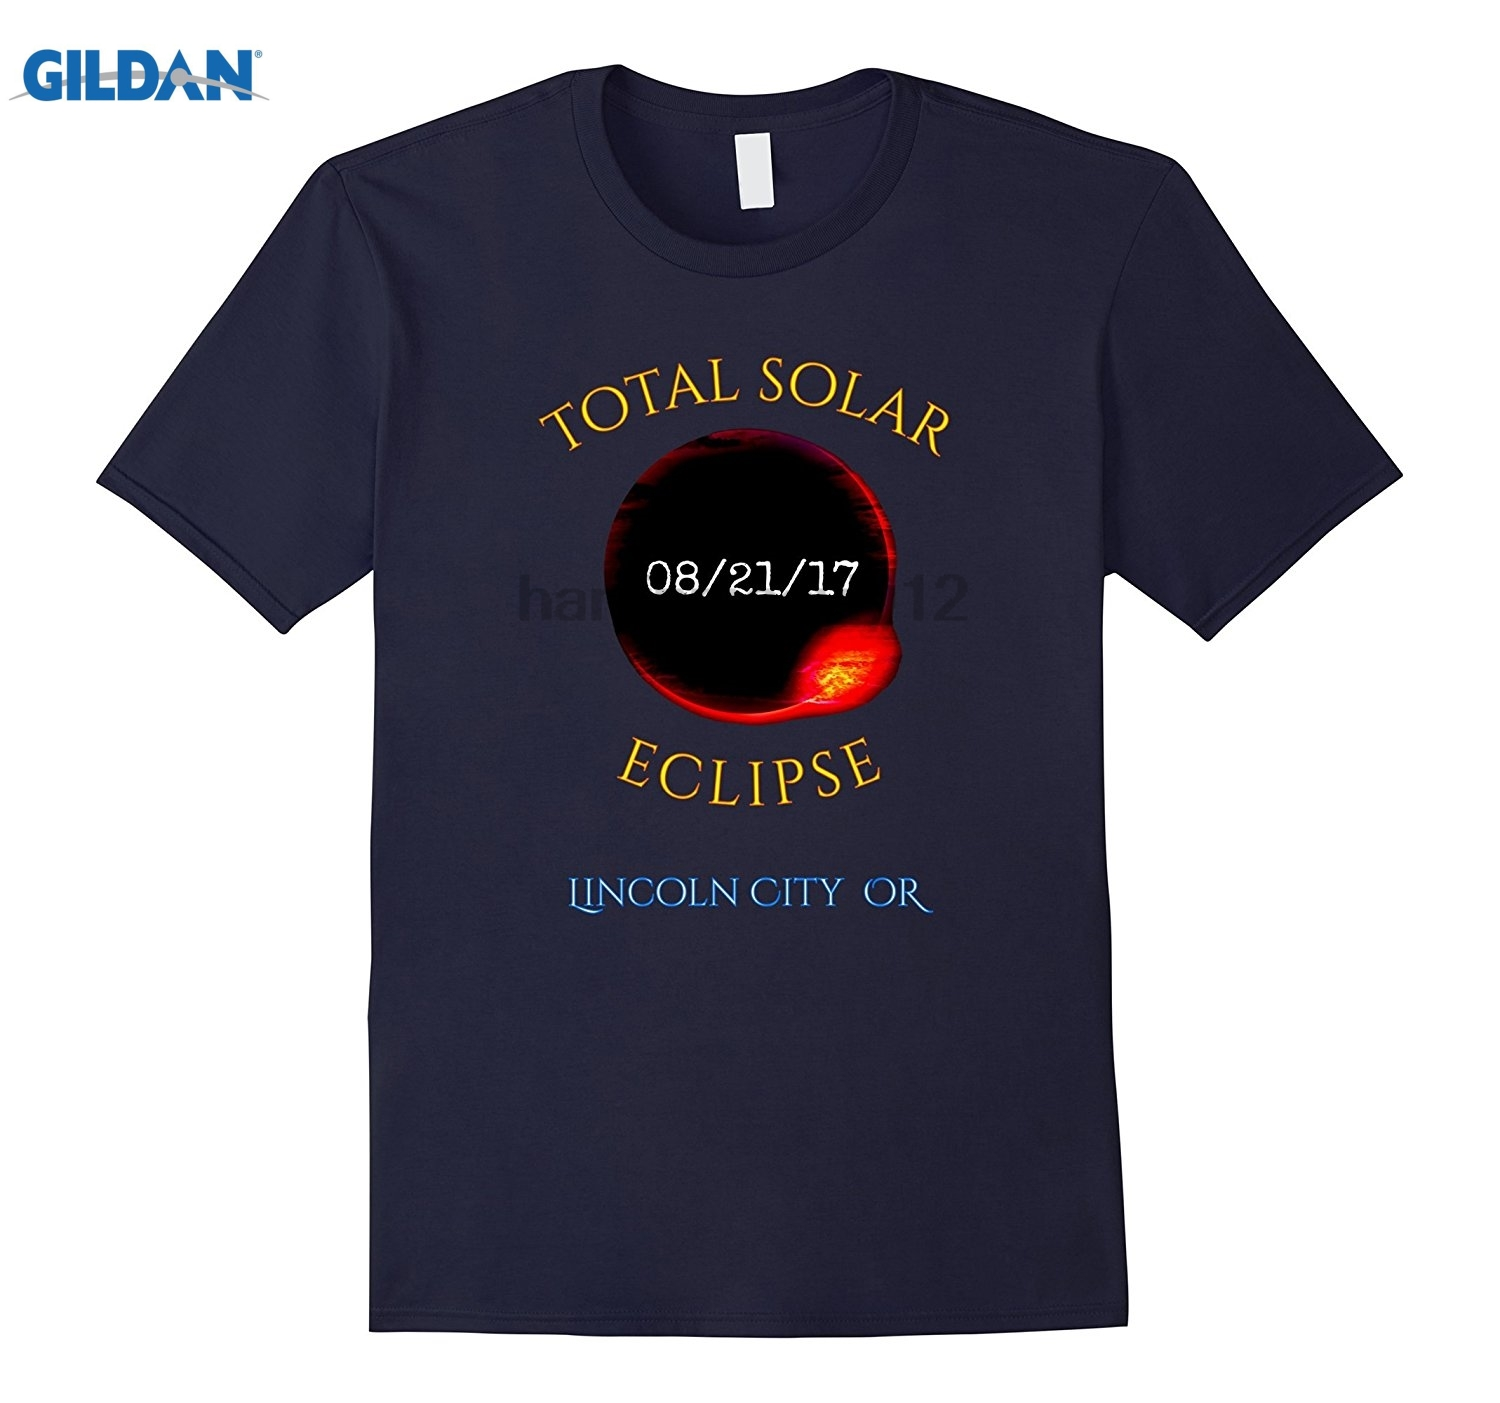 GILDAN Lincoln City OR Total Solar Eclipse Oregon t-shirt Mothers Day Ms. T-shirt